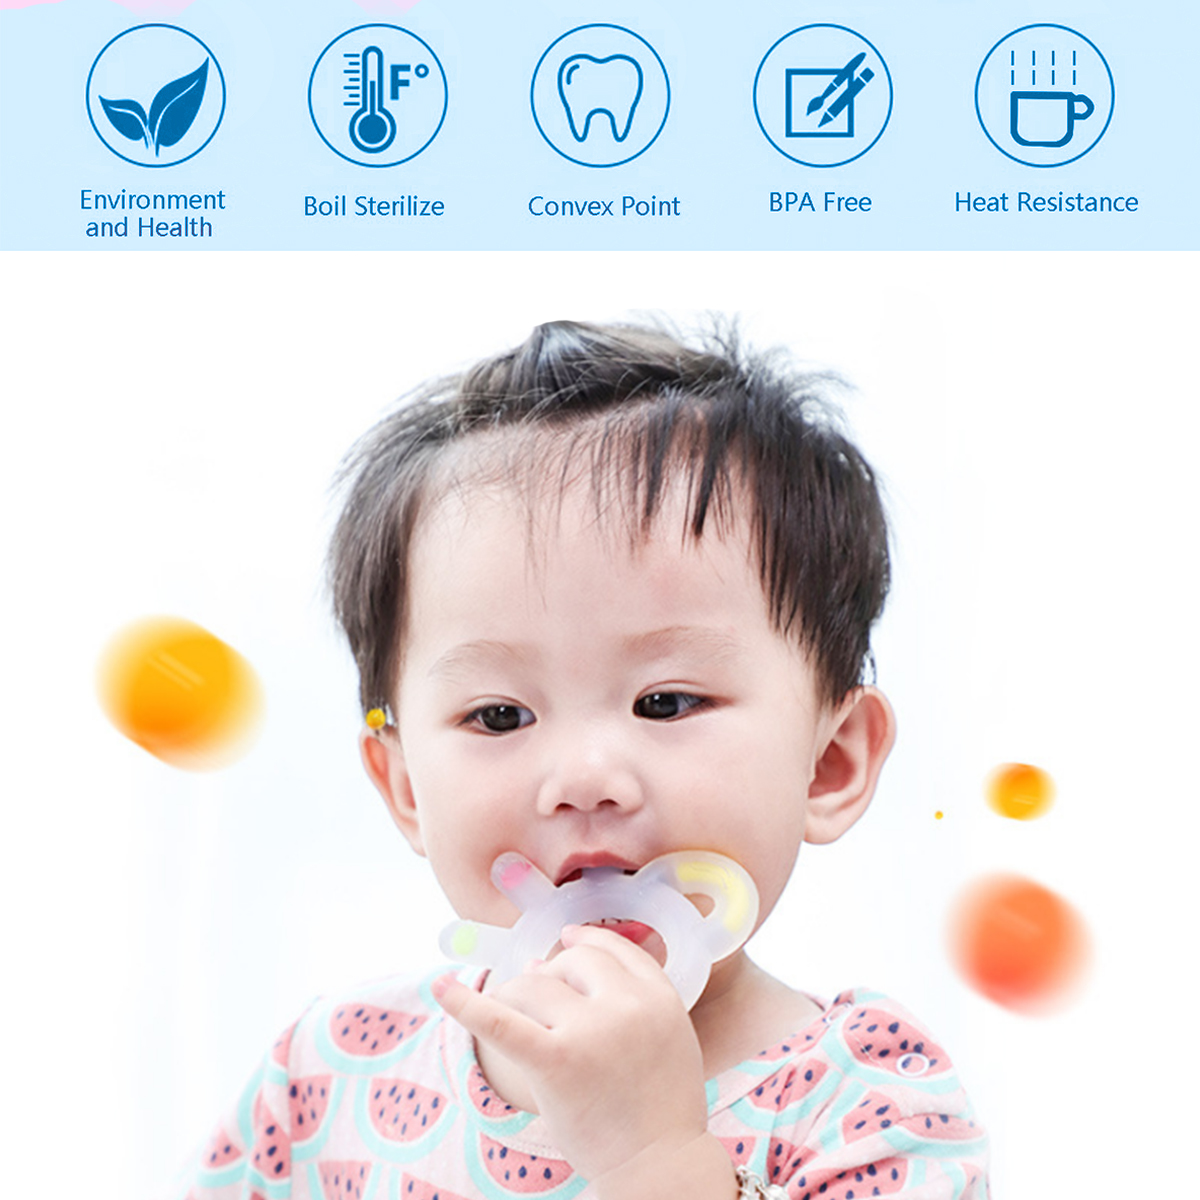 Baby Infant Food Grade Silicone Teether Kids Teething Toy Chew Toys for baby Boys Girls Chew Charms Teething Gift Toddler Toys in Baby Teethers from Mother Kids